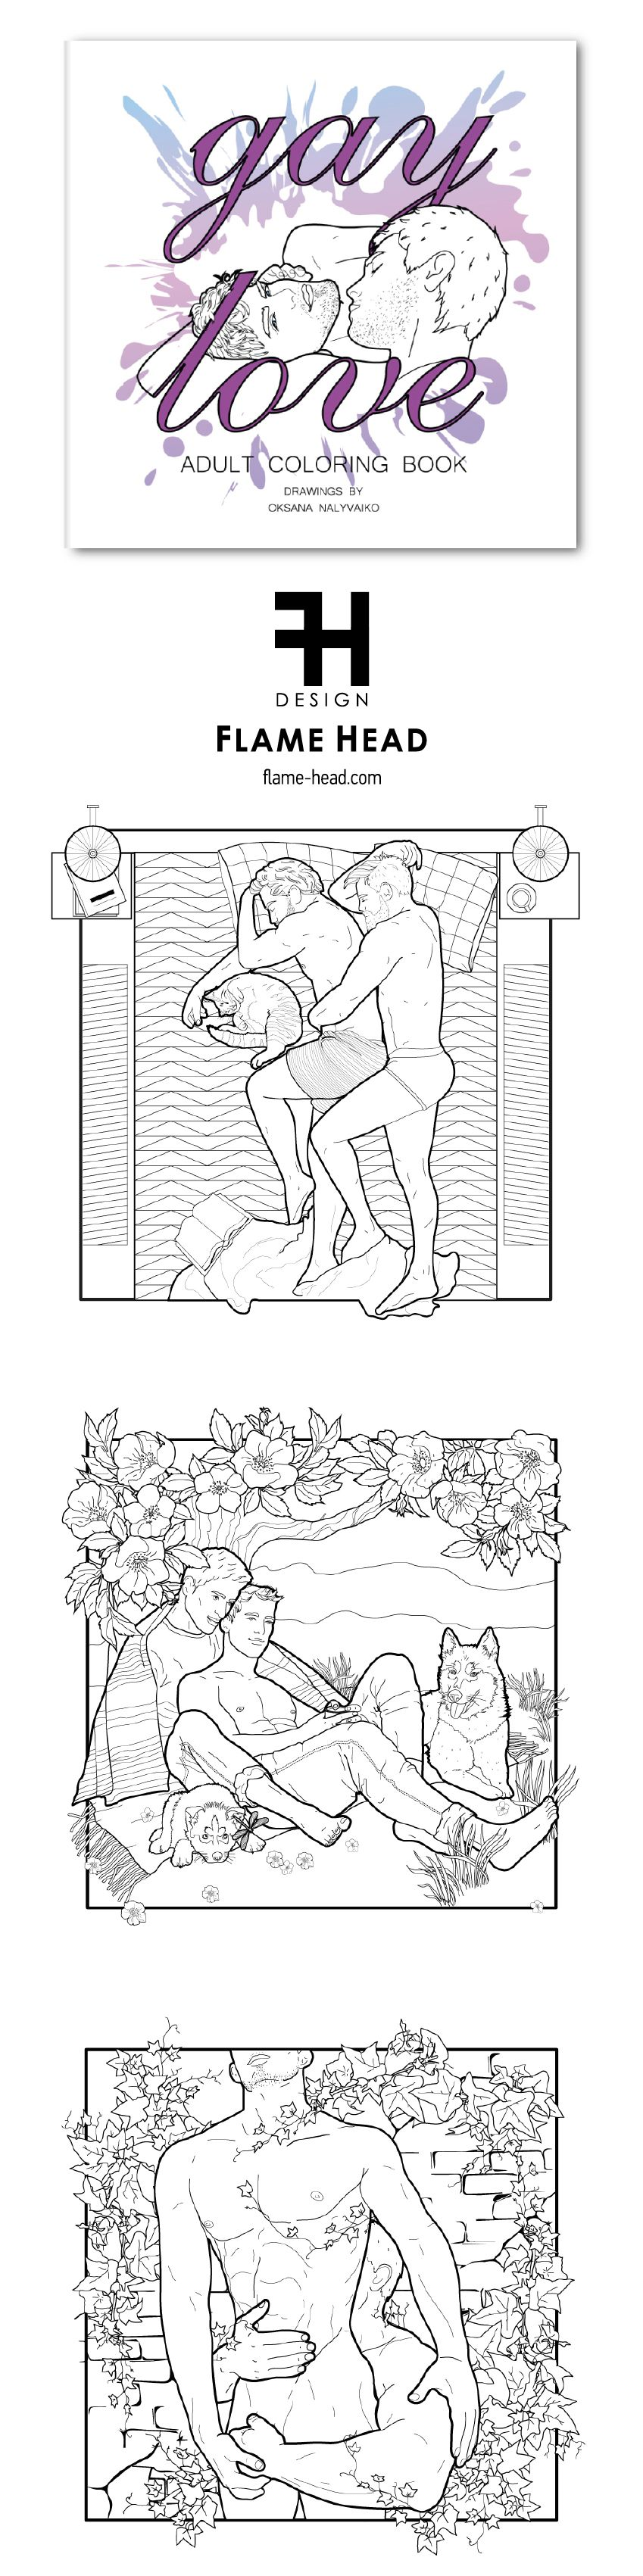 Pin On Erotic Coloring Books By Flamehead Design